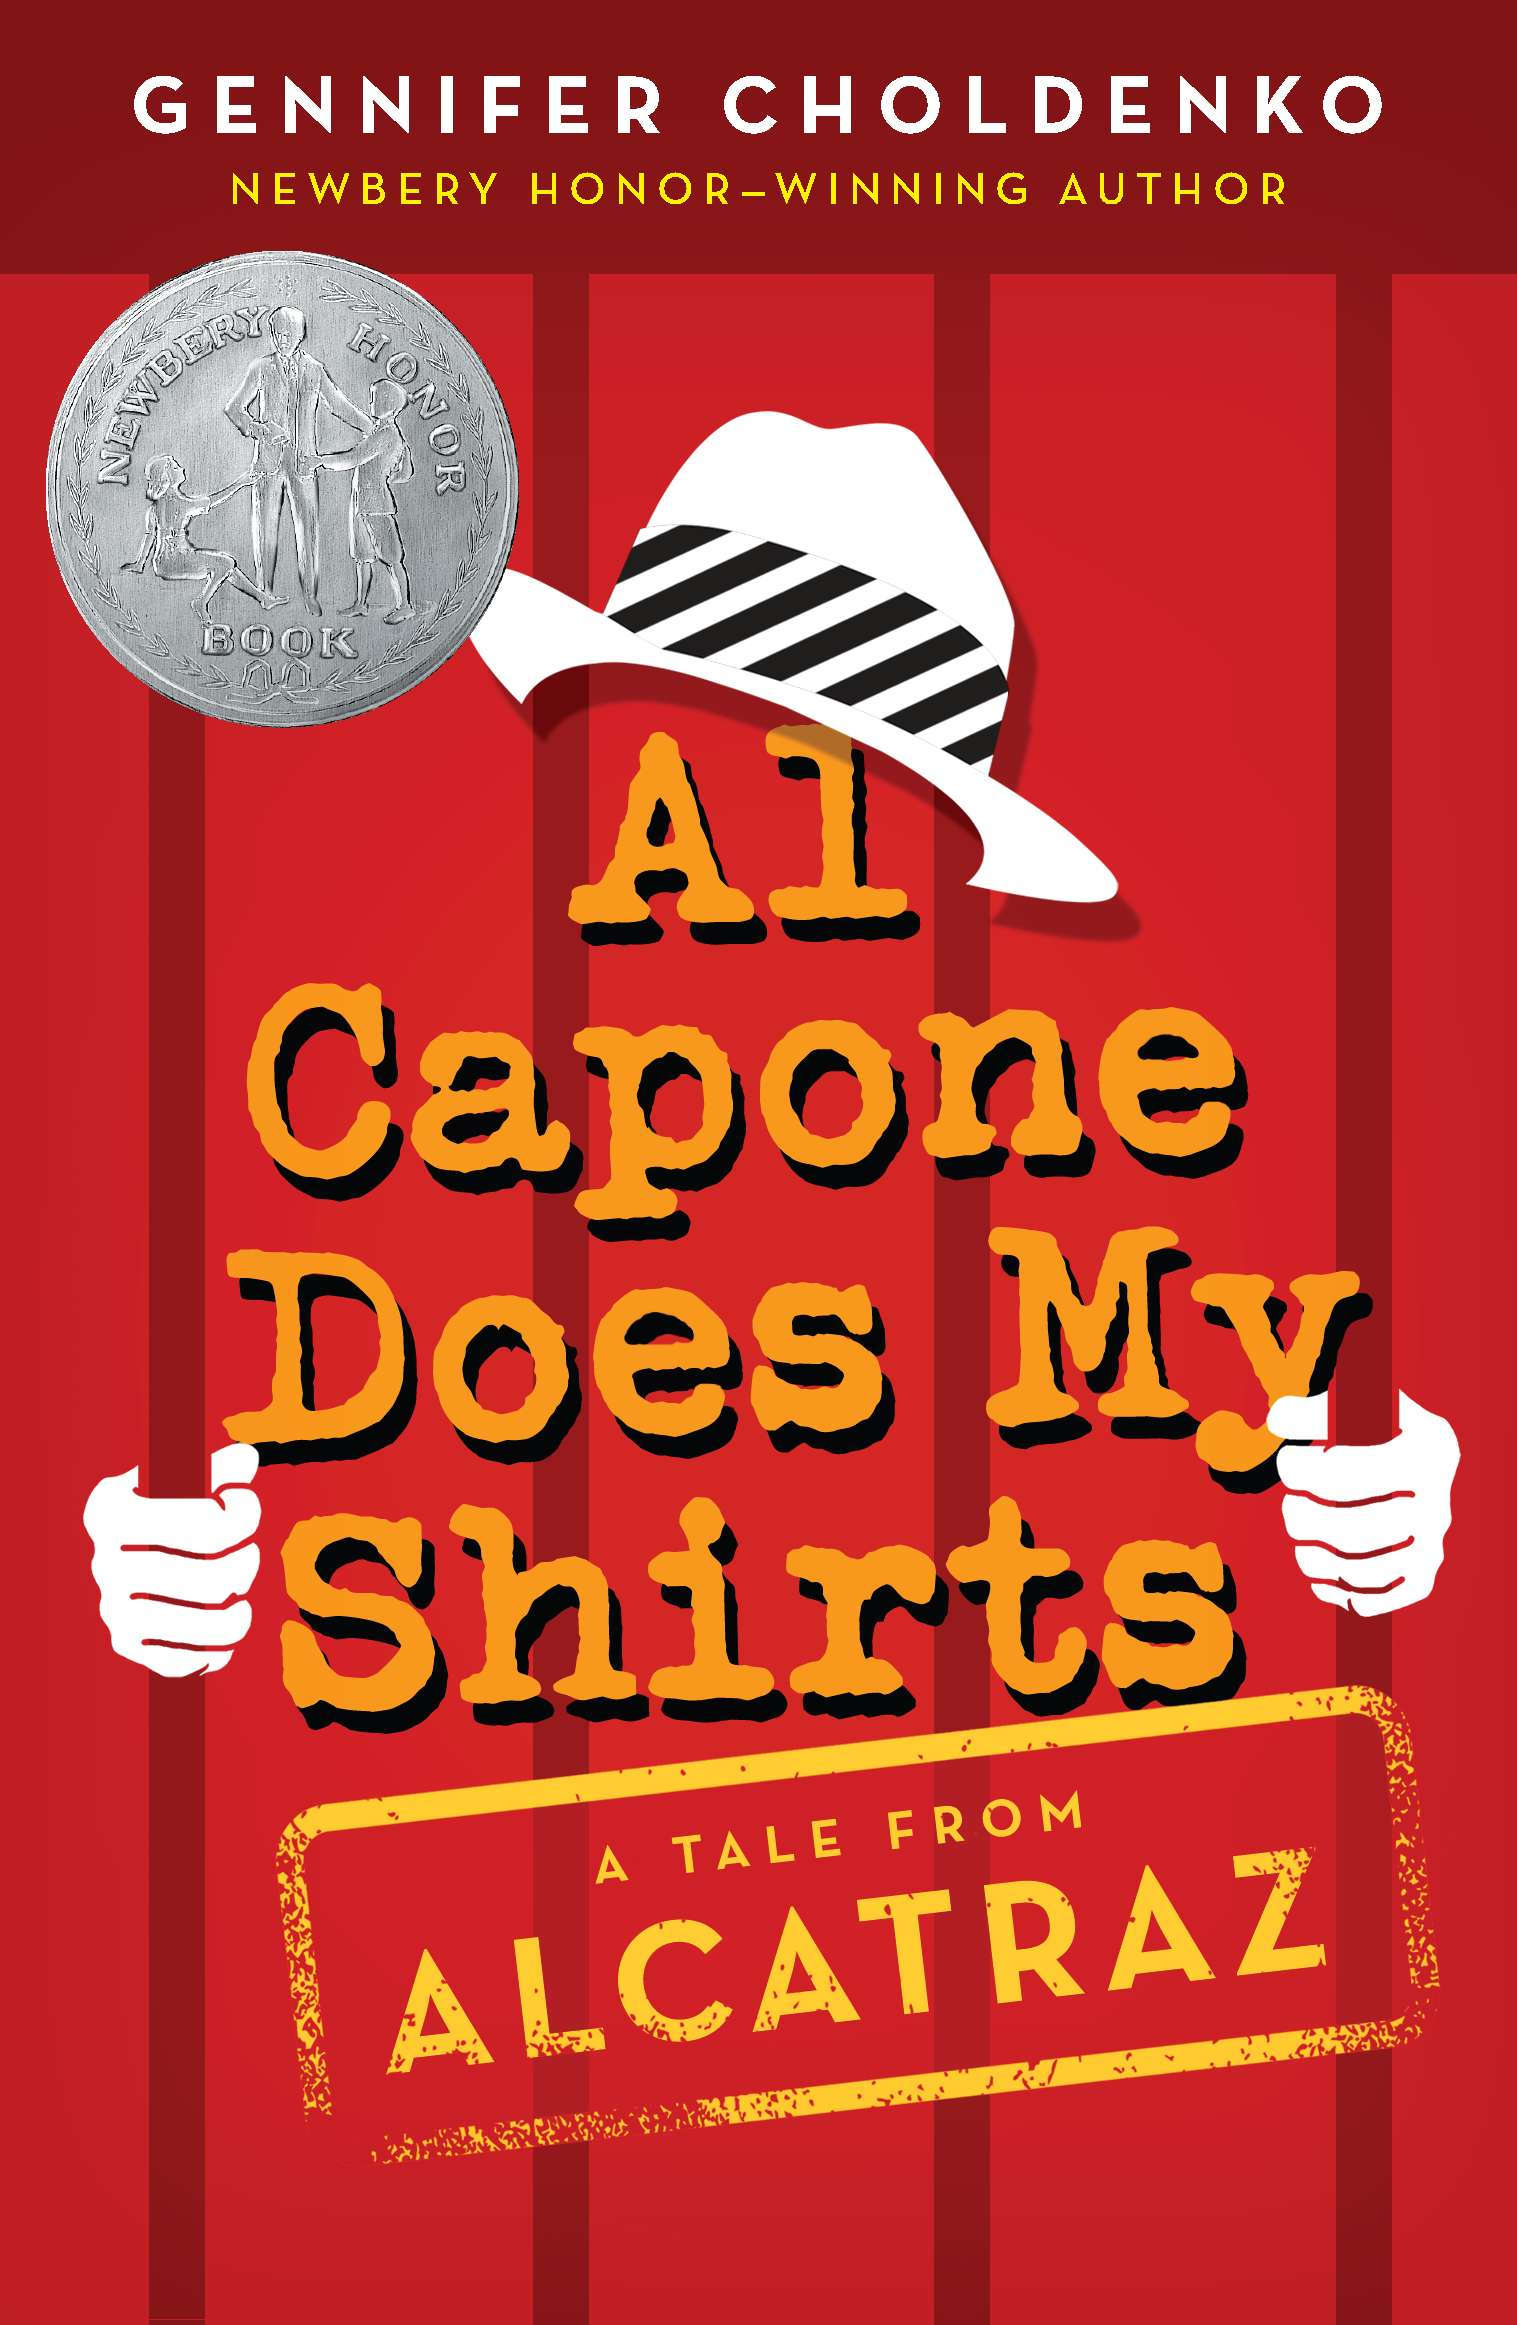 Al Capone Does My Shirts Summary & Study Guide